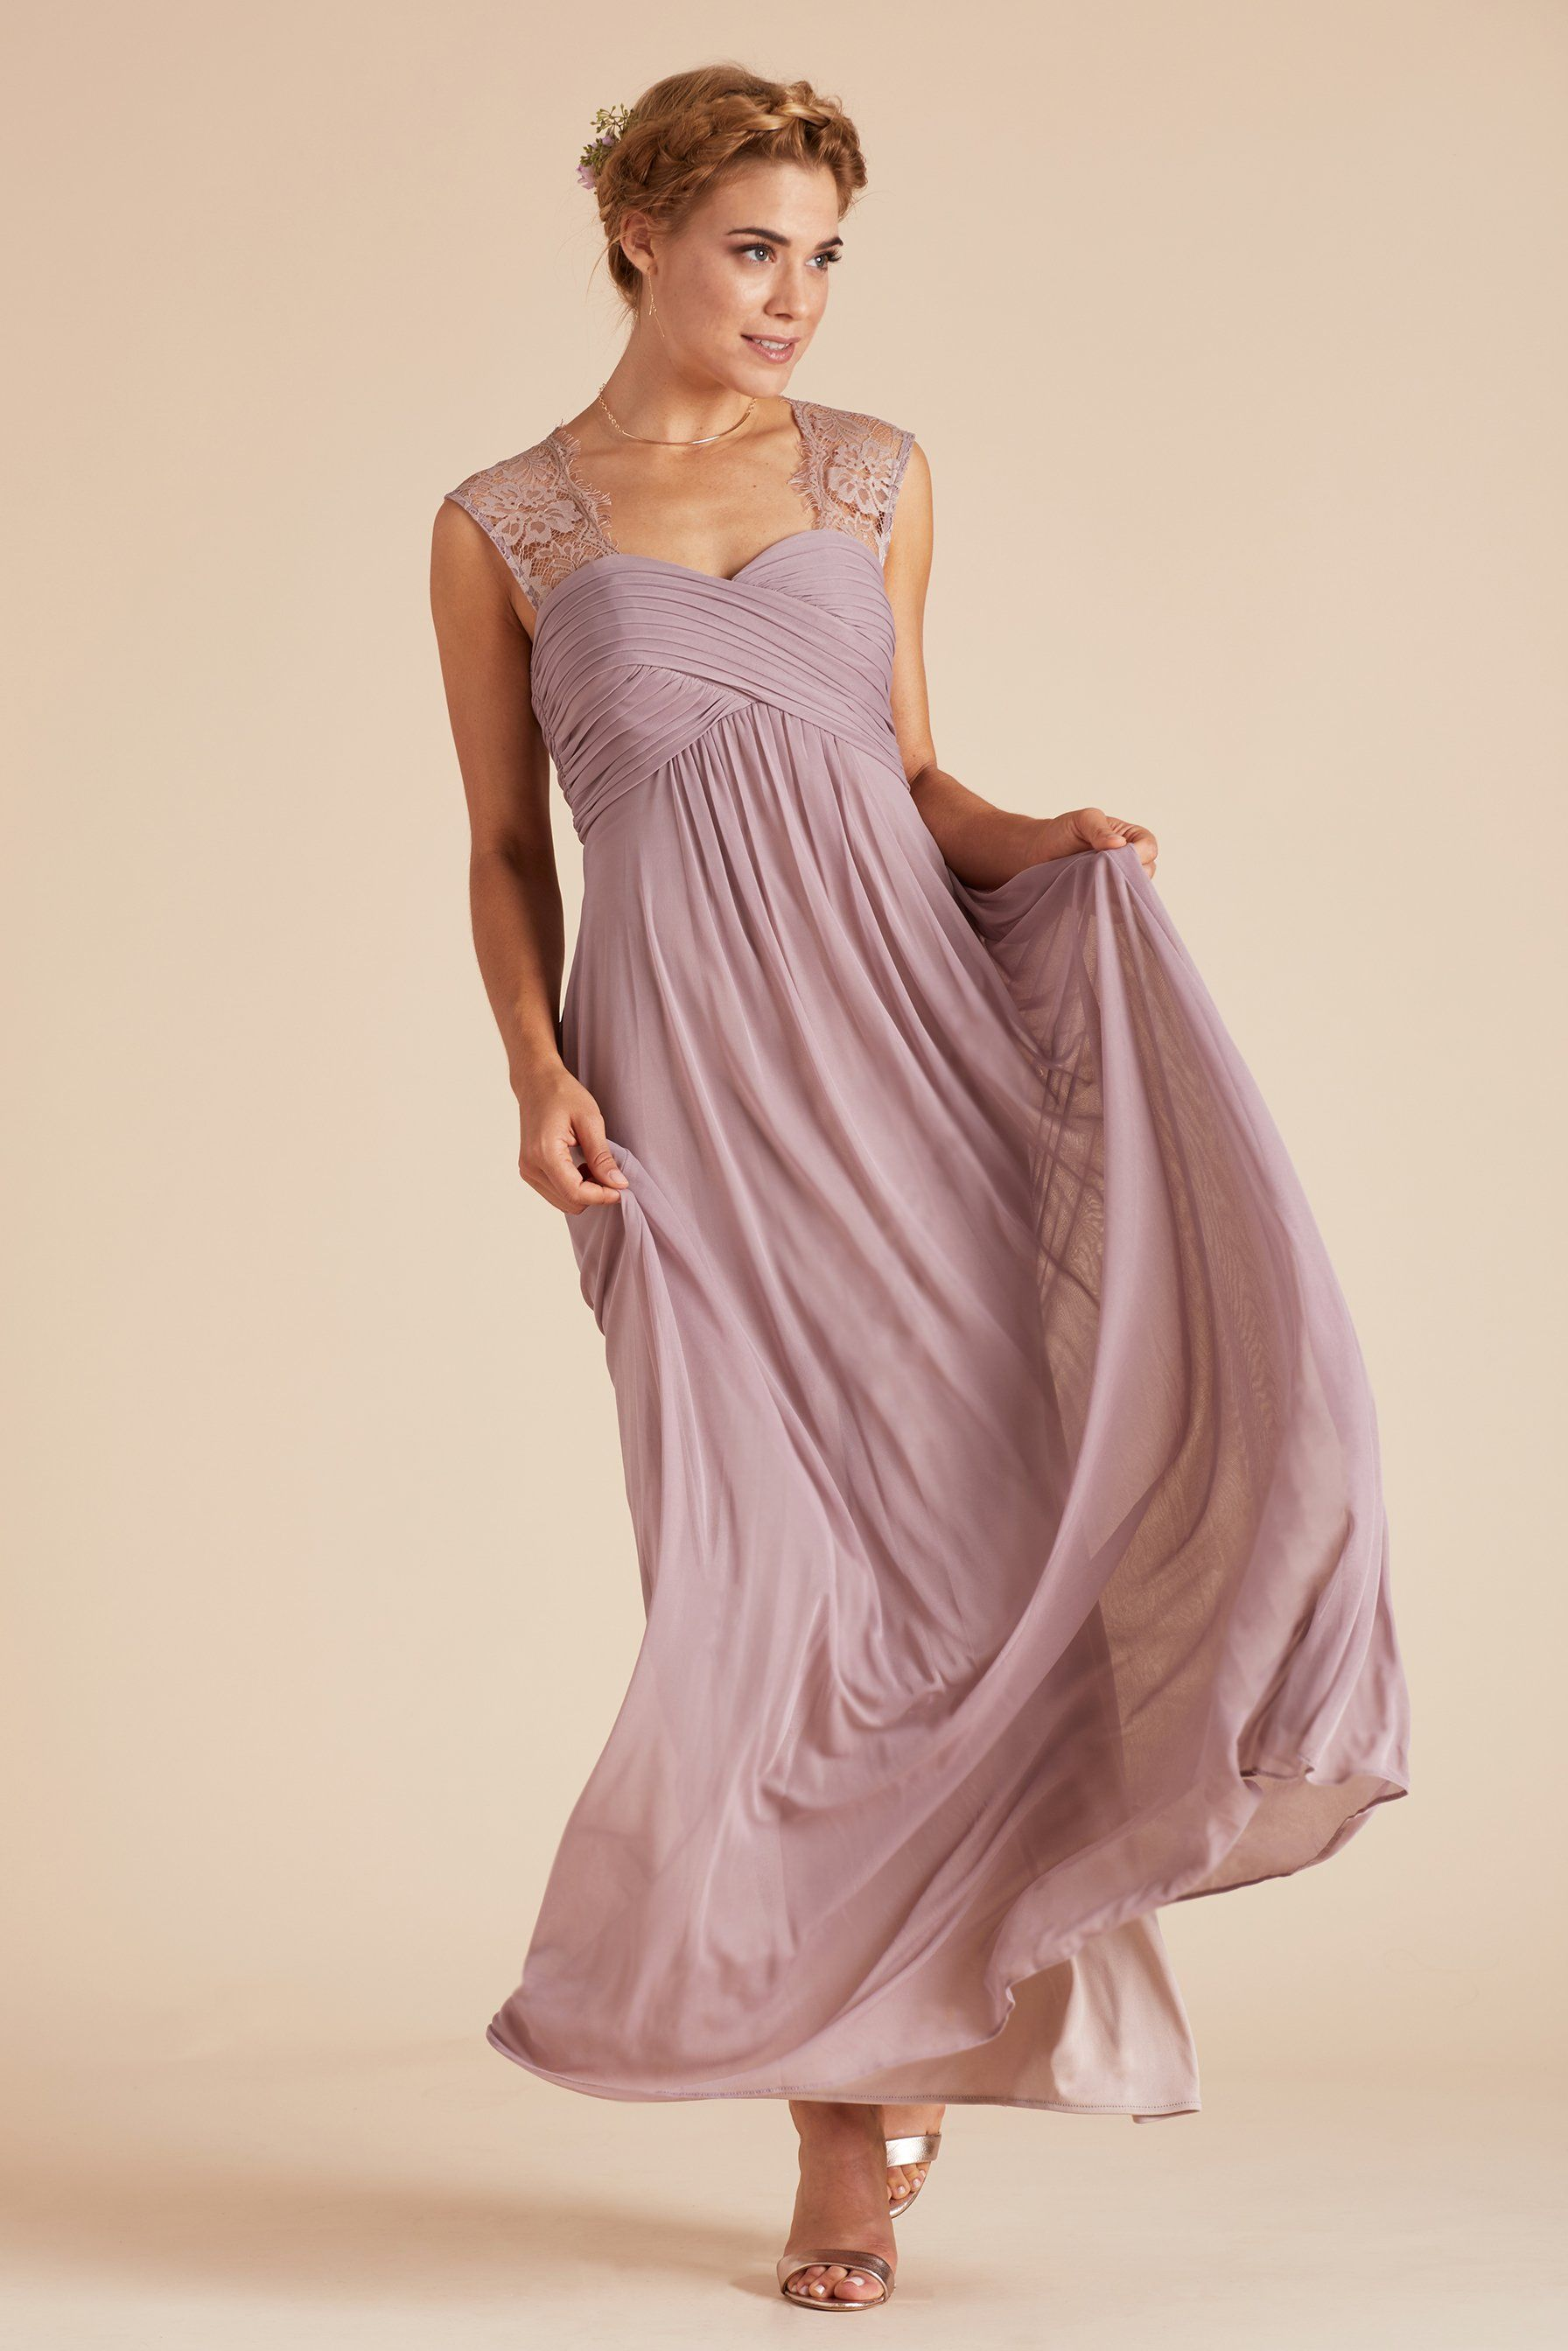 716c53fa79d Mary bridesmaid dress by Birdy Grey in Mauve. Vintage style lace empire  waist gown under  100.